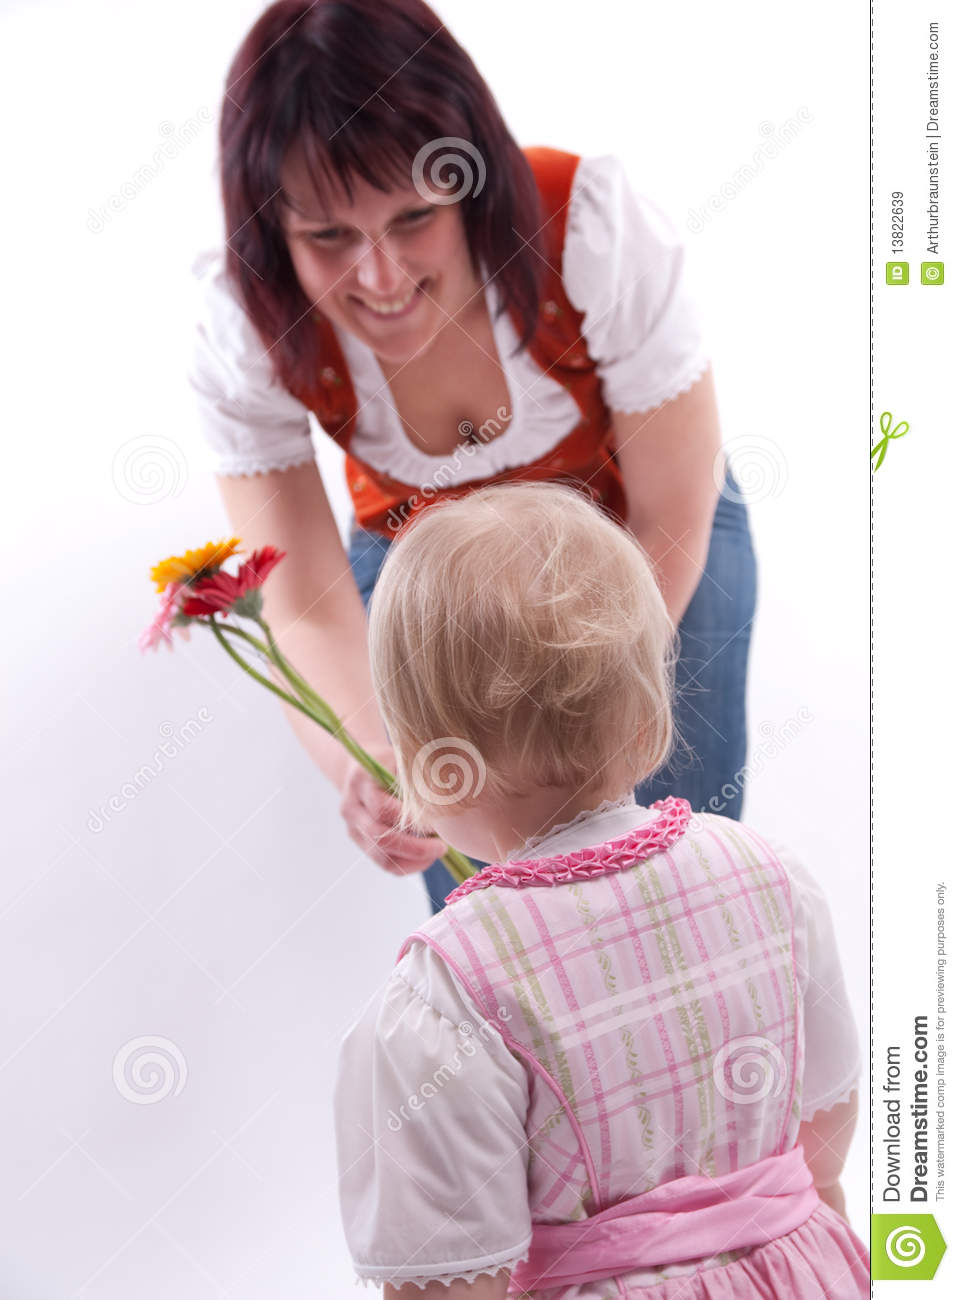 Flowers to mothers day